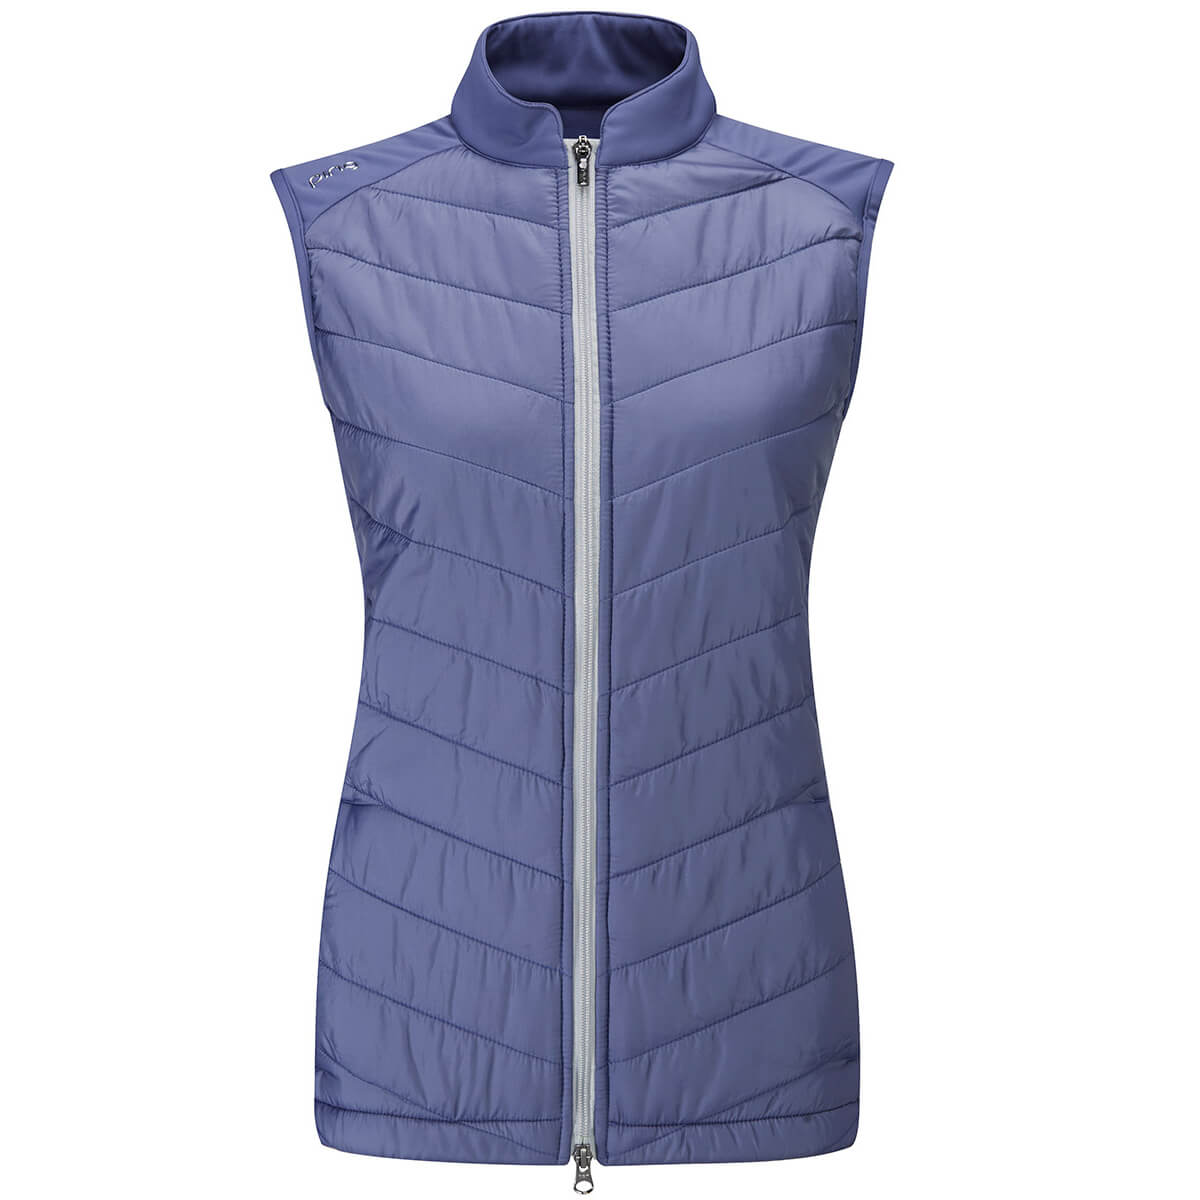 08465d2543 Ladies Golf Clubs | Ladies Golf Clothing & Shoes | OnlineGolf